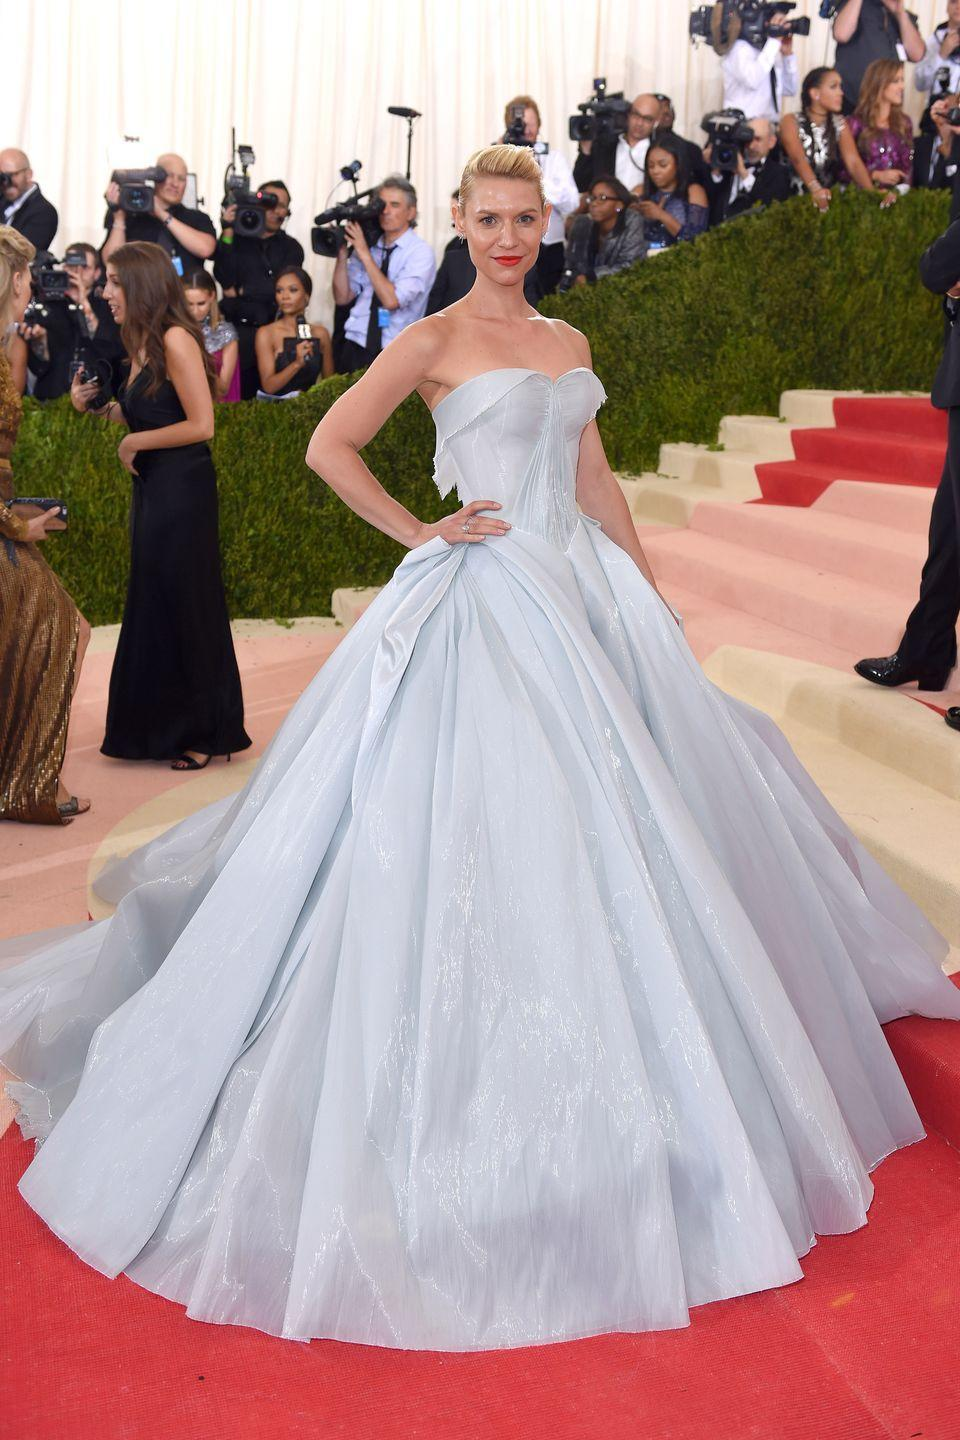 <p>Claire Danes wore a sky blue dress reminiscent of Cinderella's famous gown to the 2016 Met Gala in New York. (Fun fact: Designer Zac Posen made the dress with fiber optics so that the gown could light up in the dark.) </p>